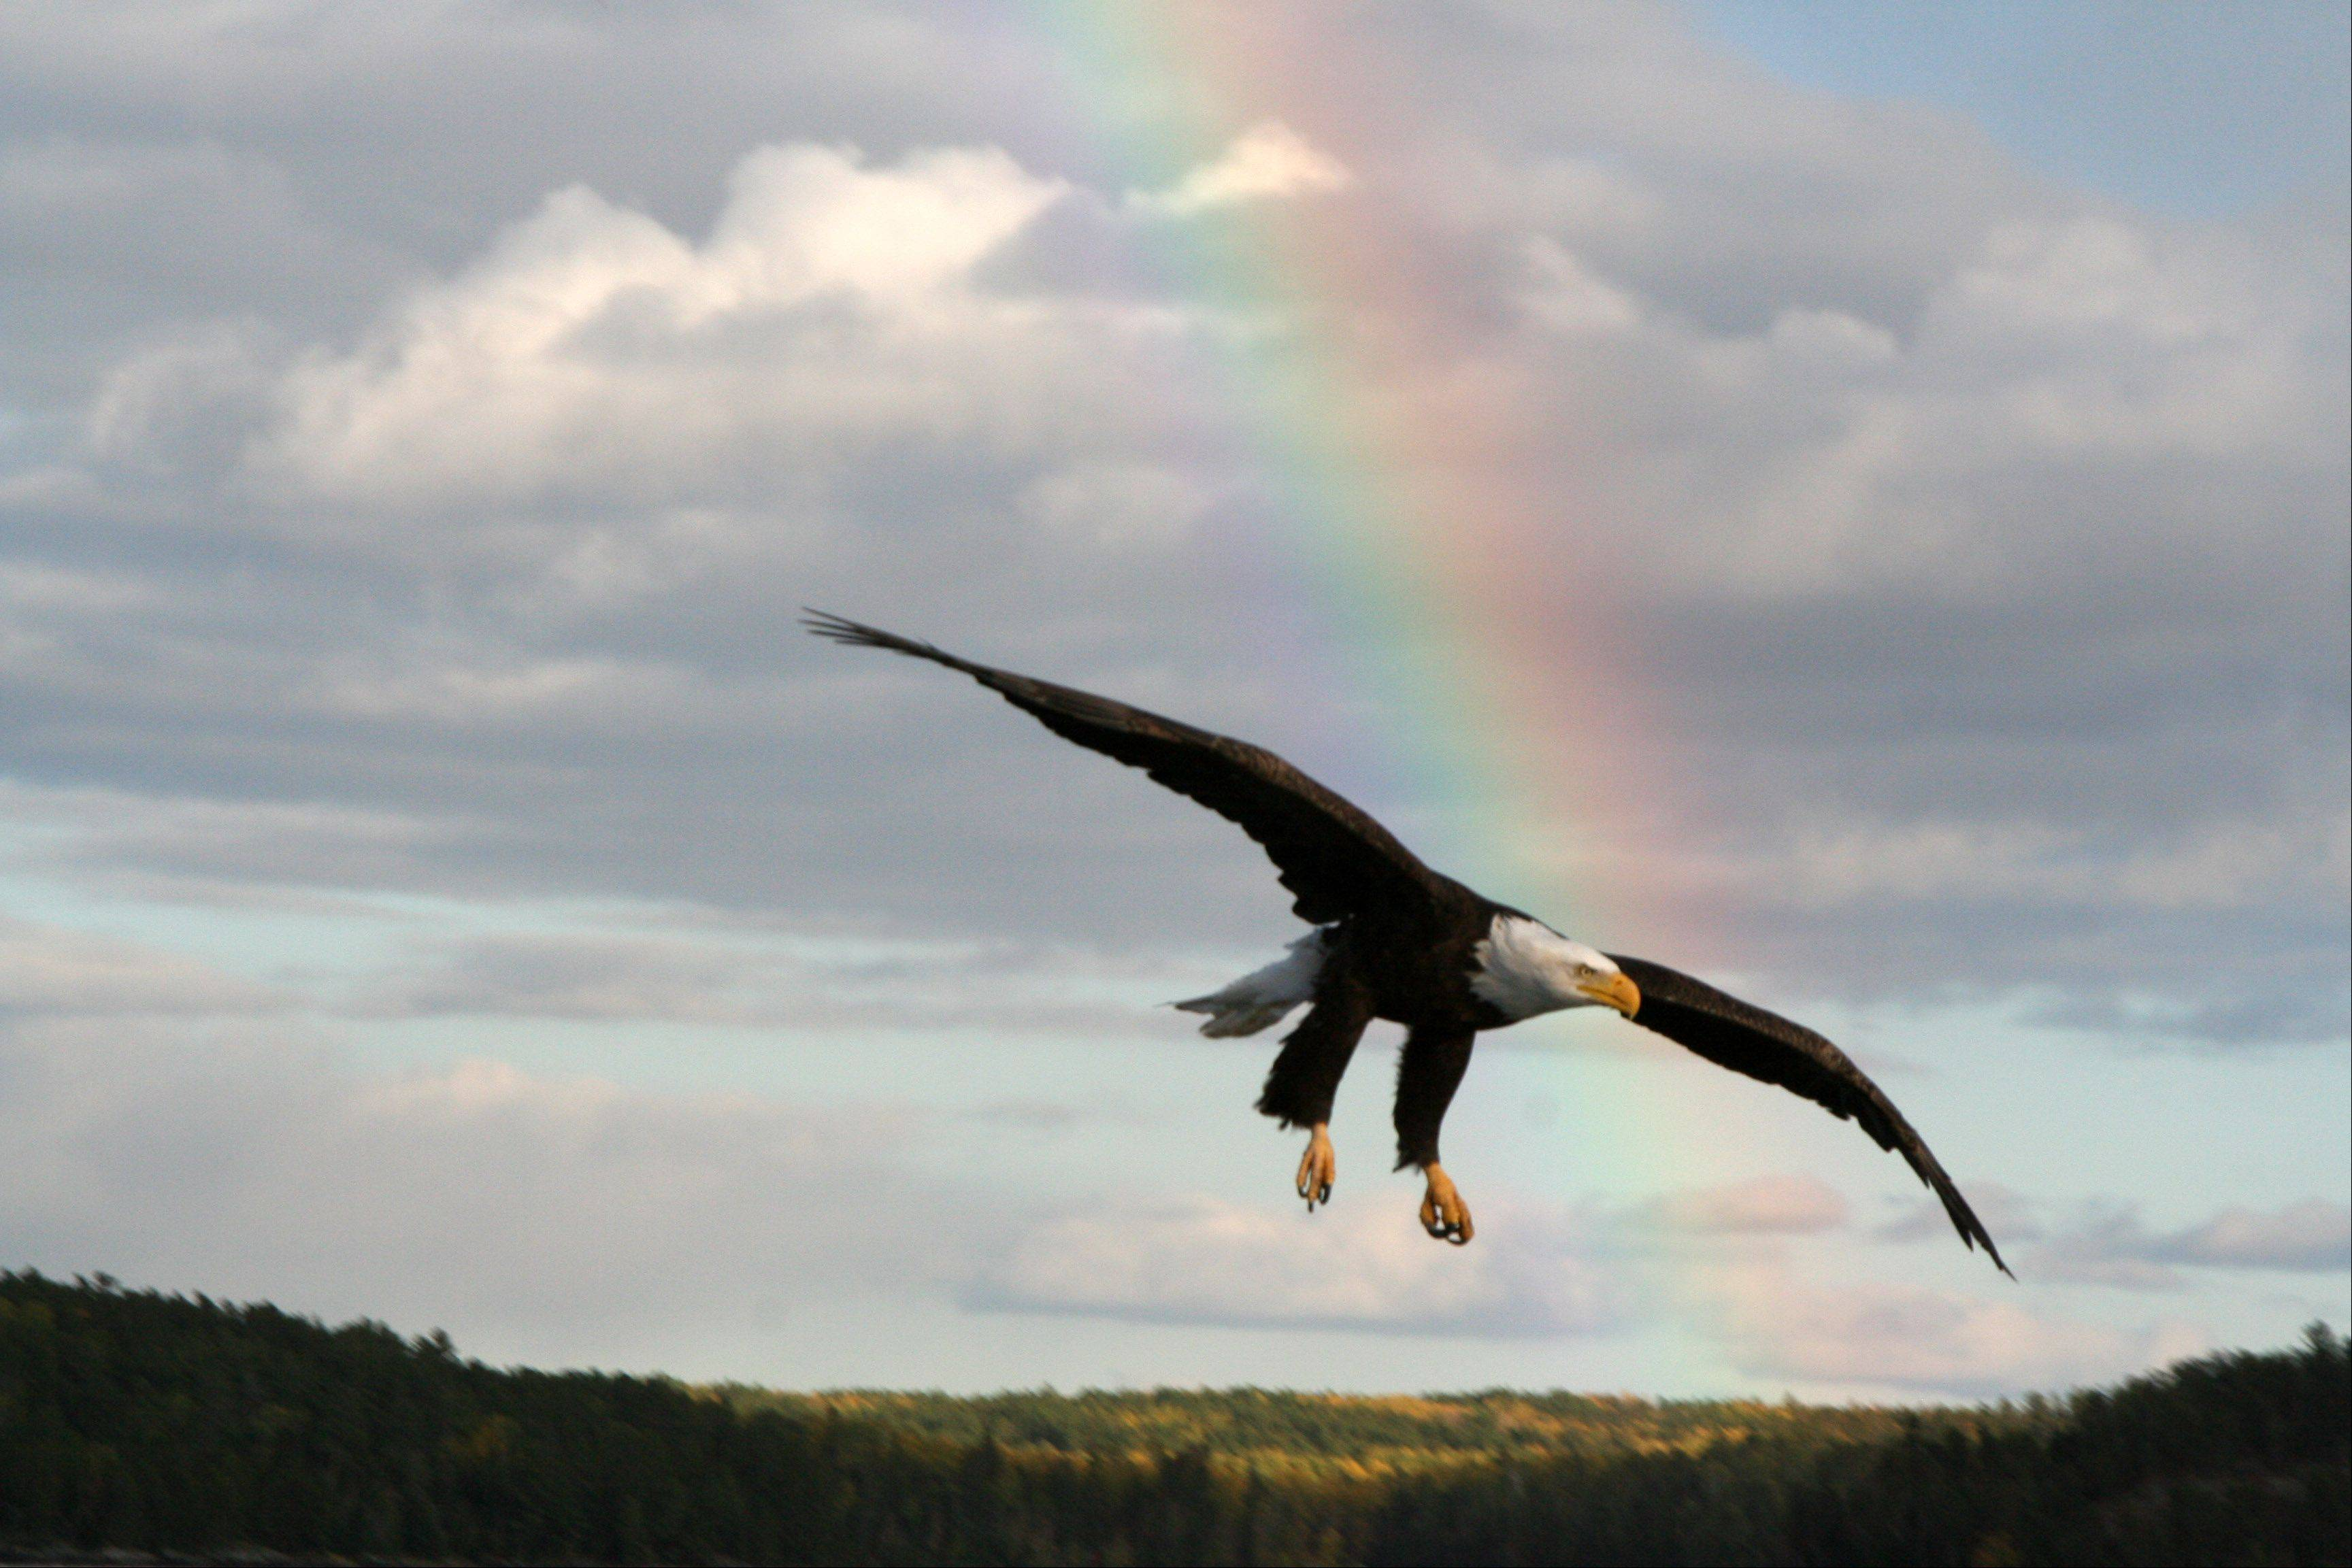 This photo of a bald eagle with rainbow in the background was taken in Lake of the Woods, Ontario, Canada. I took while fishing on Lake of the Woods Lake. This area is near Nester Falls Ontario, Canada.